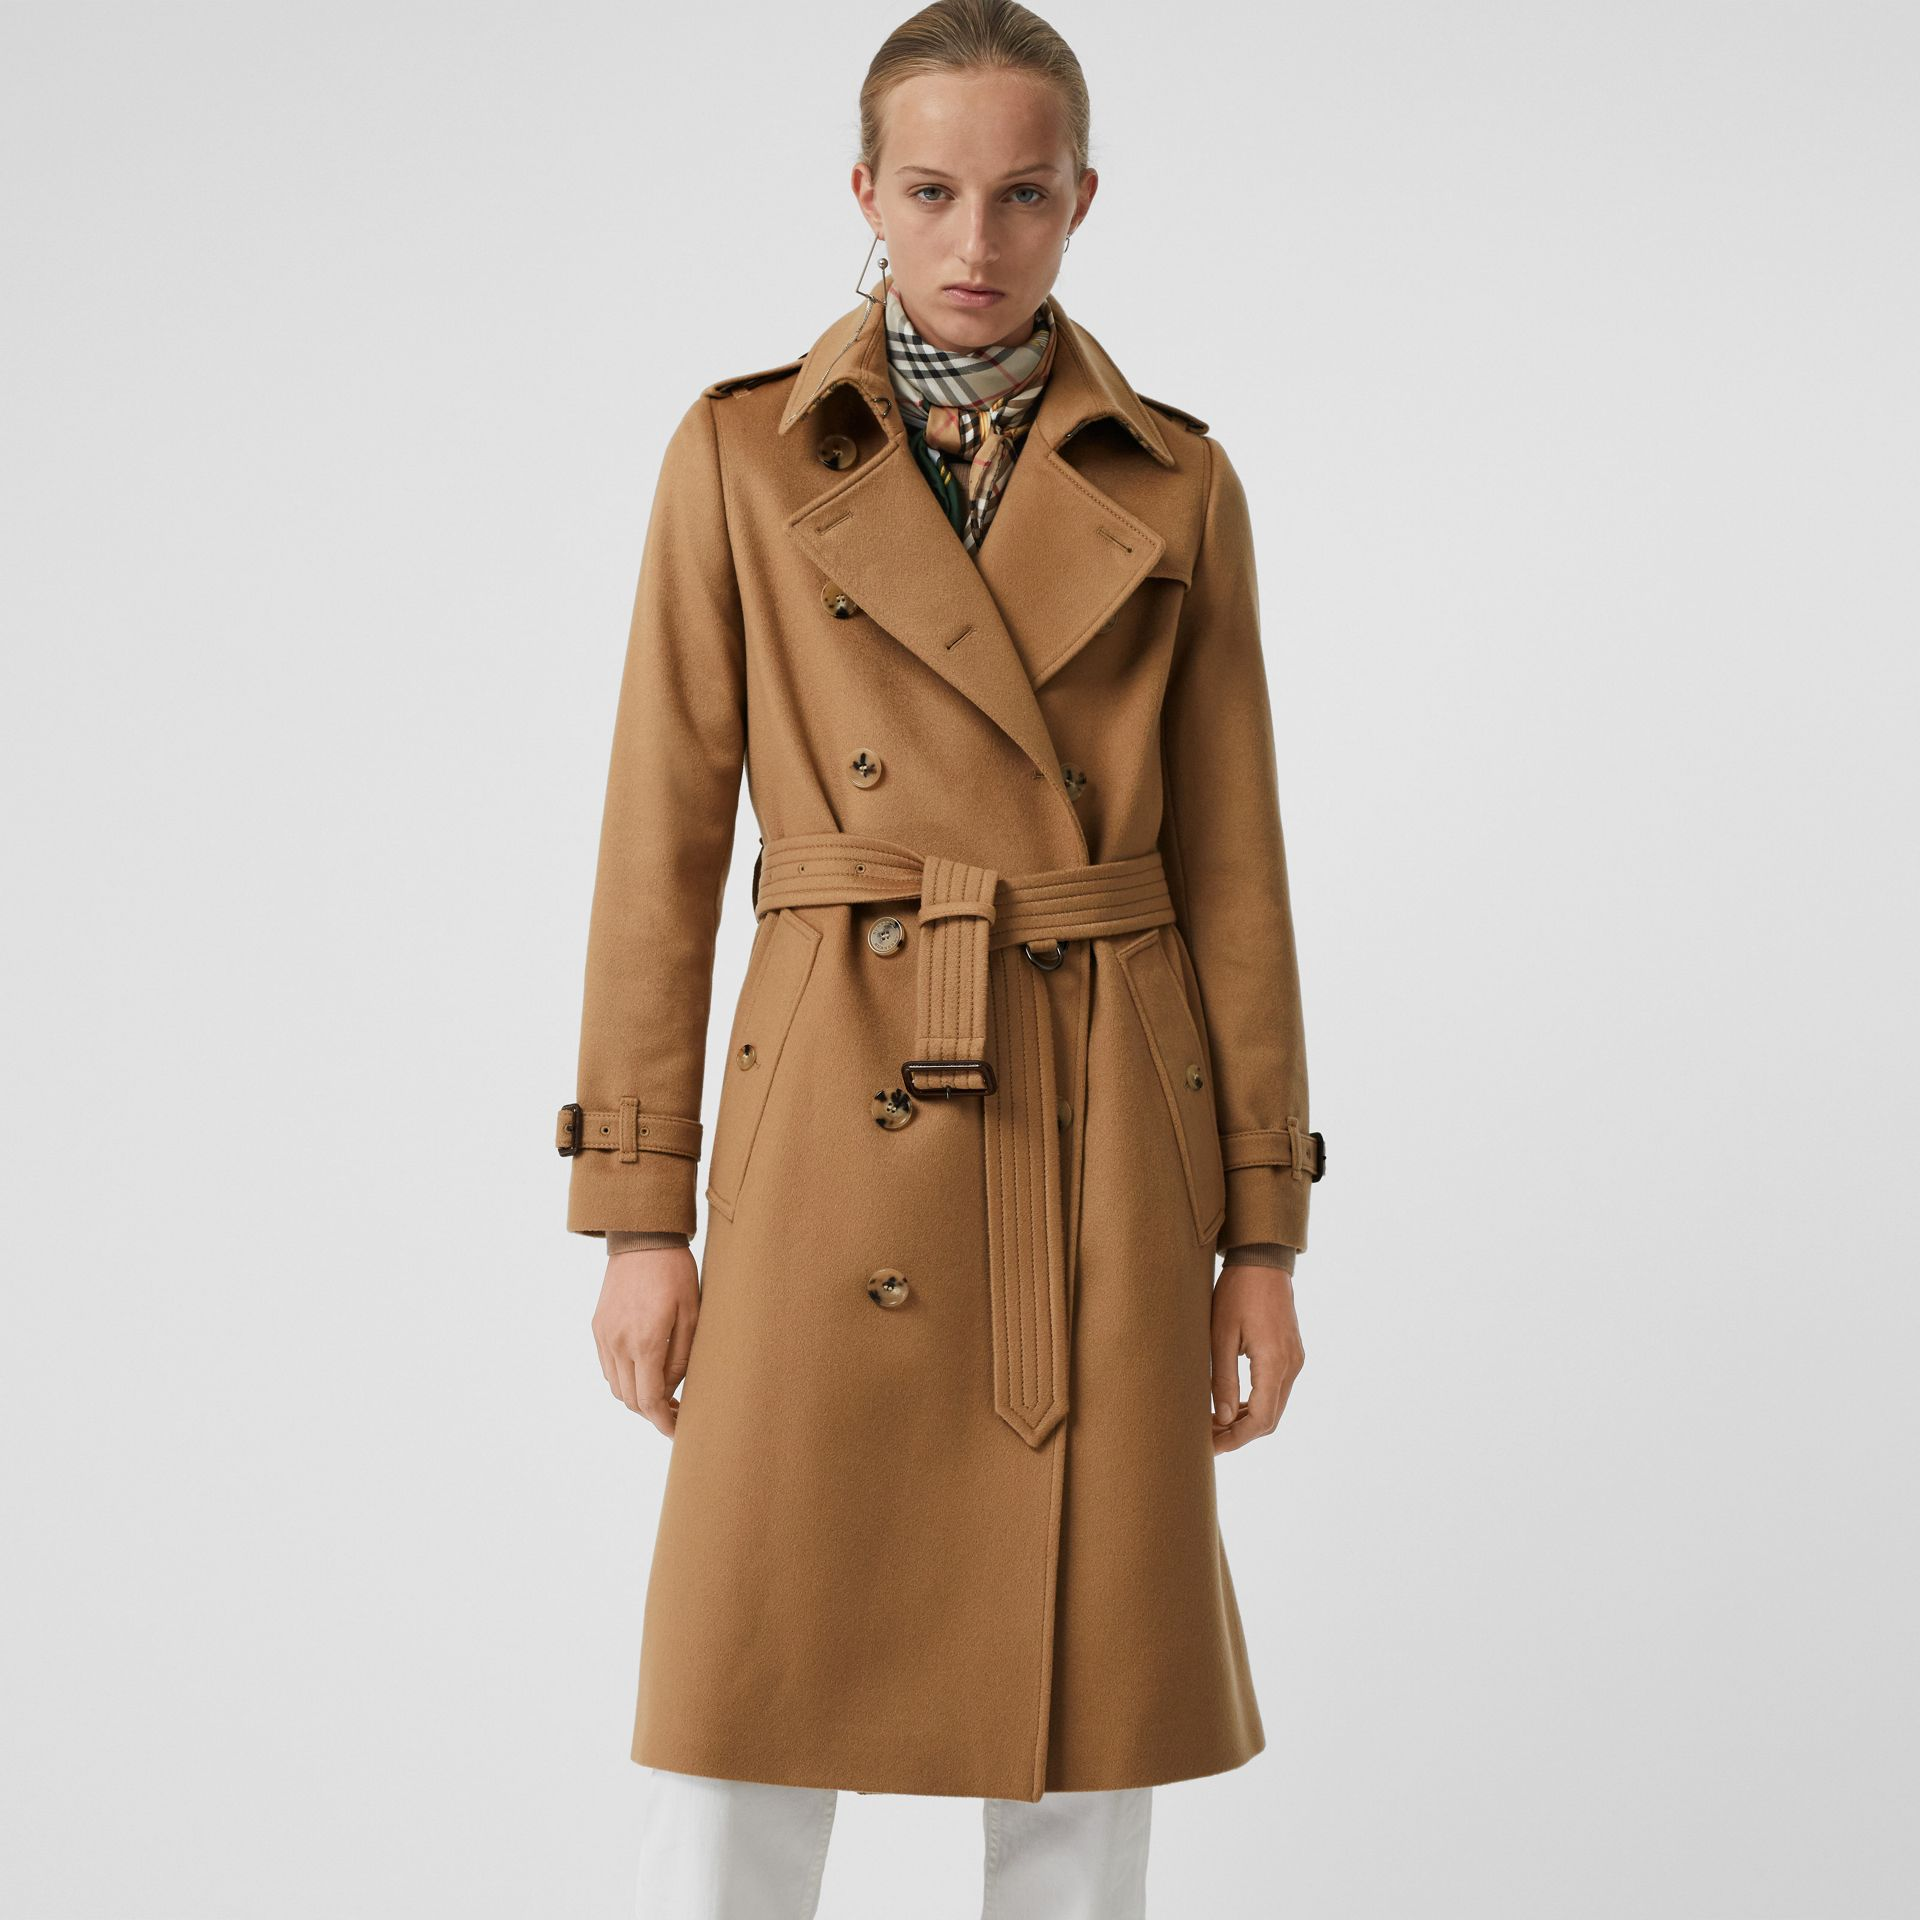 Cashmere Trench Coat in Mid Camel - Women | Burberry United States - gallery image 5